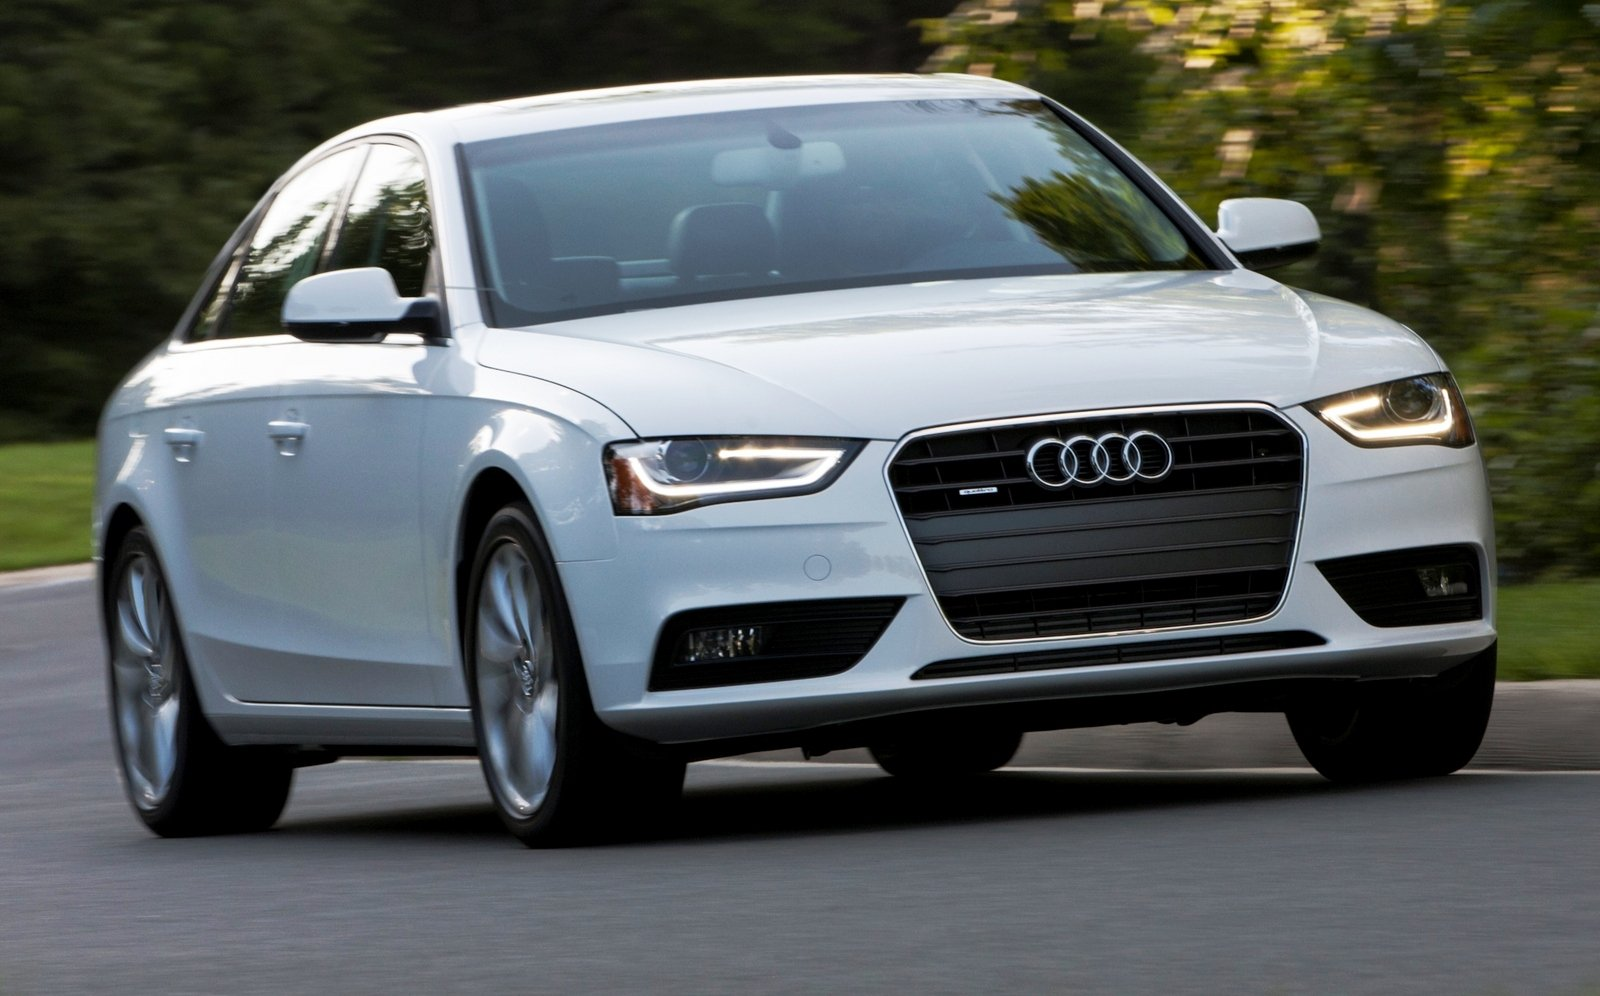 2014 2015 audi a4 picture 513869 car review top speed. Black Bedroom Furniture Sets. Home Design Ideas